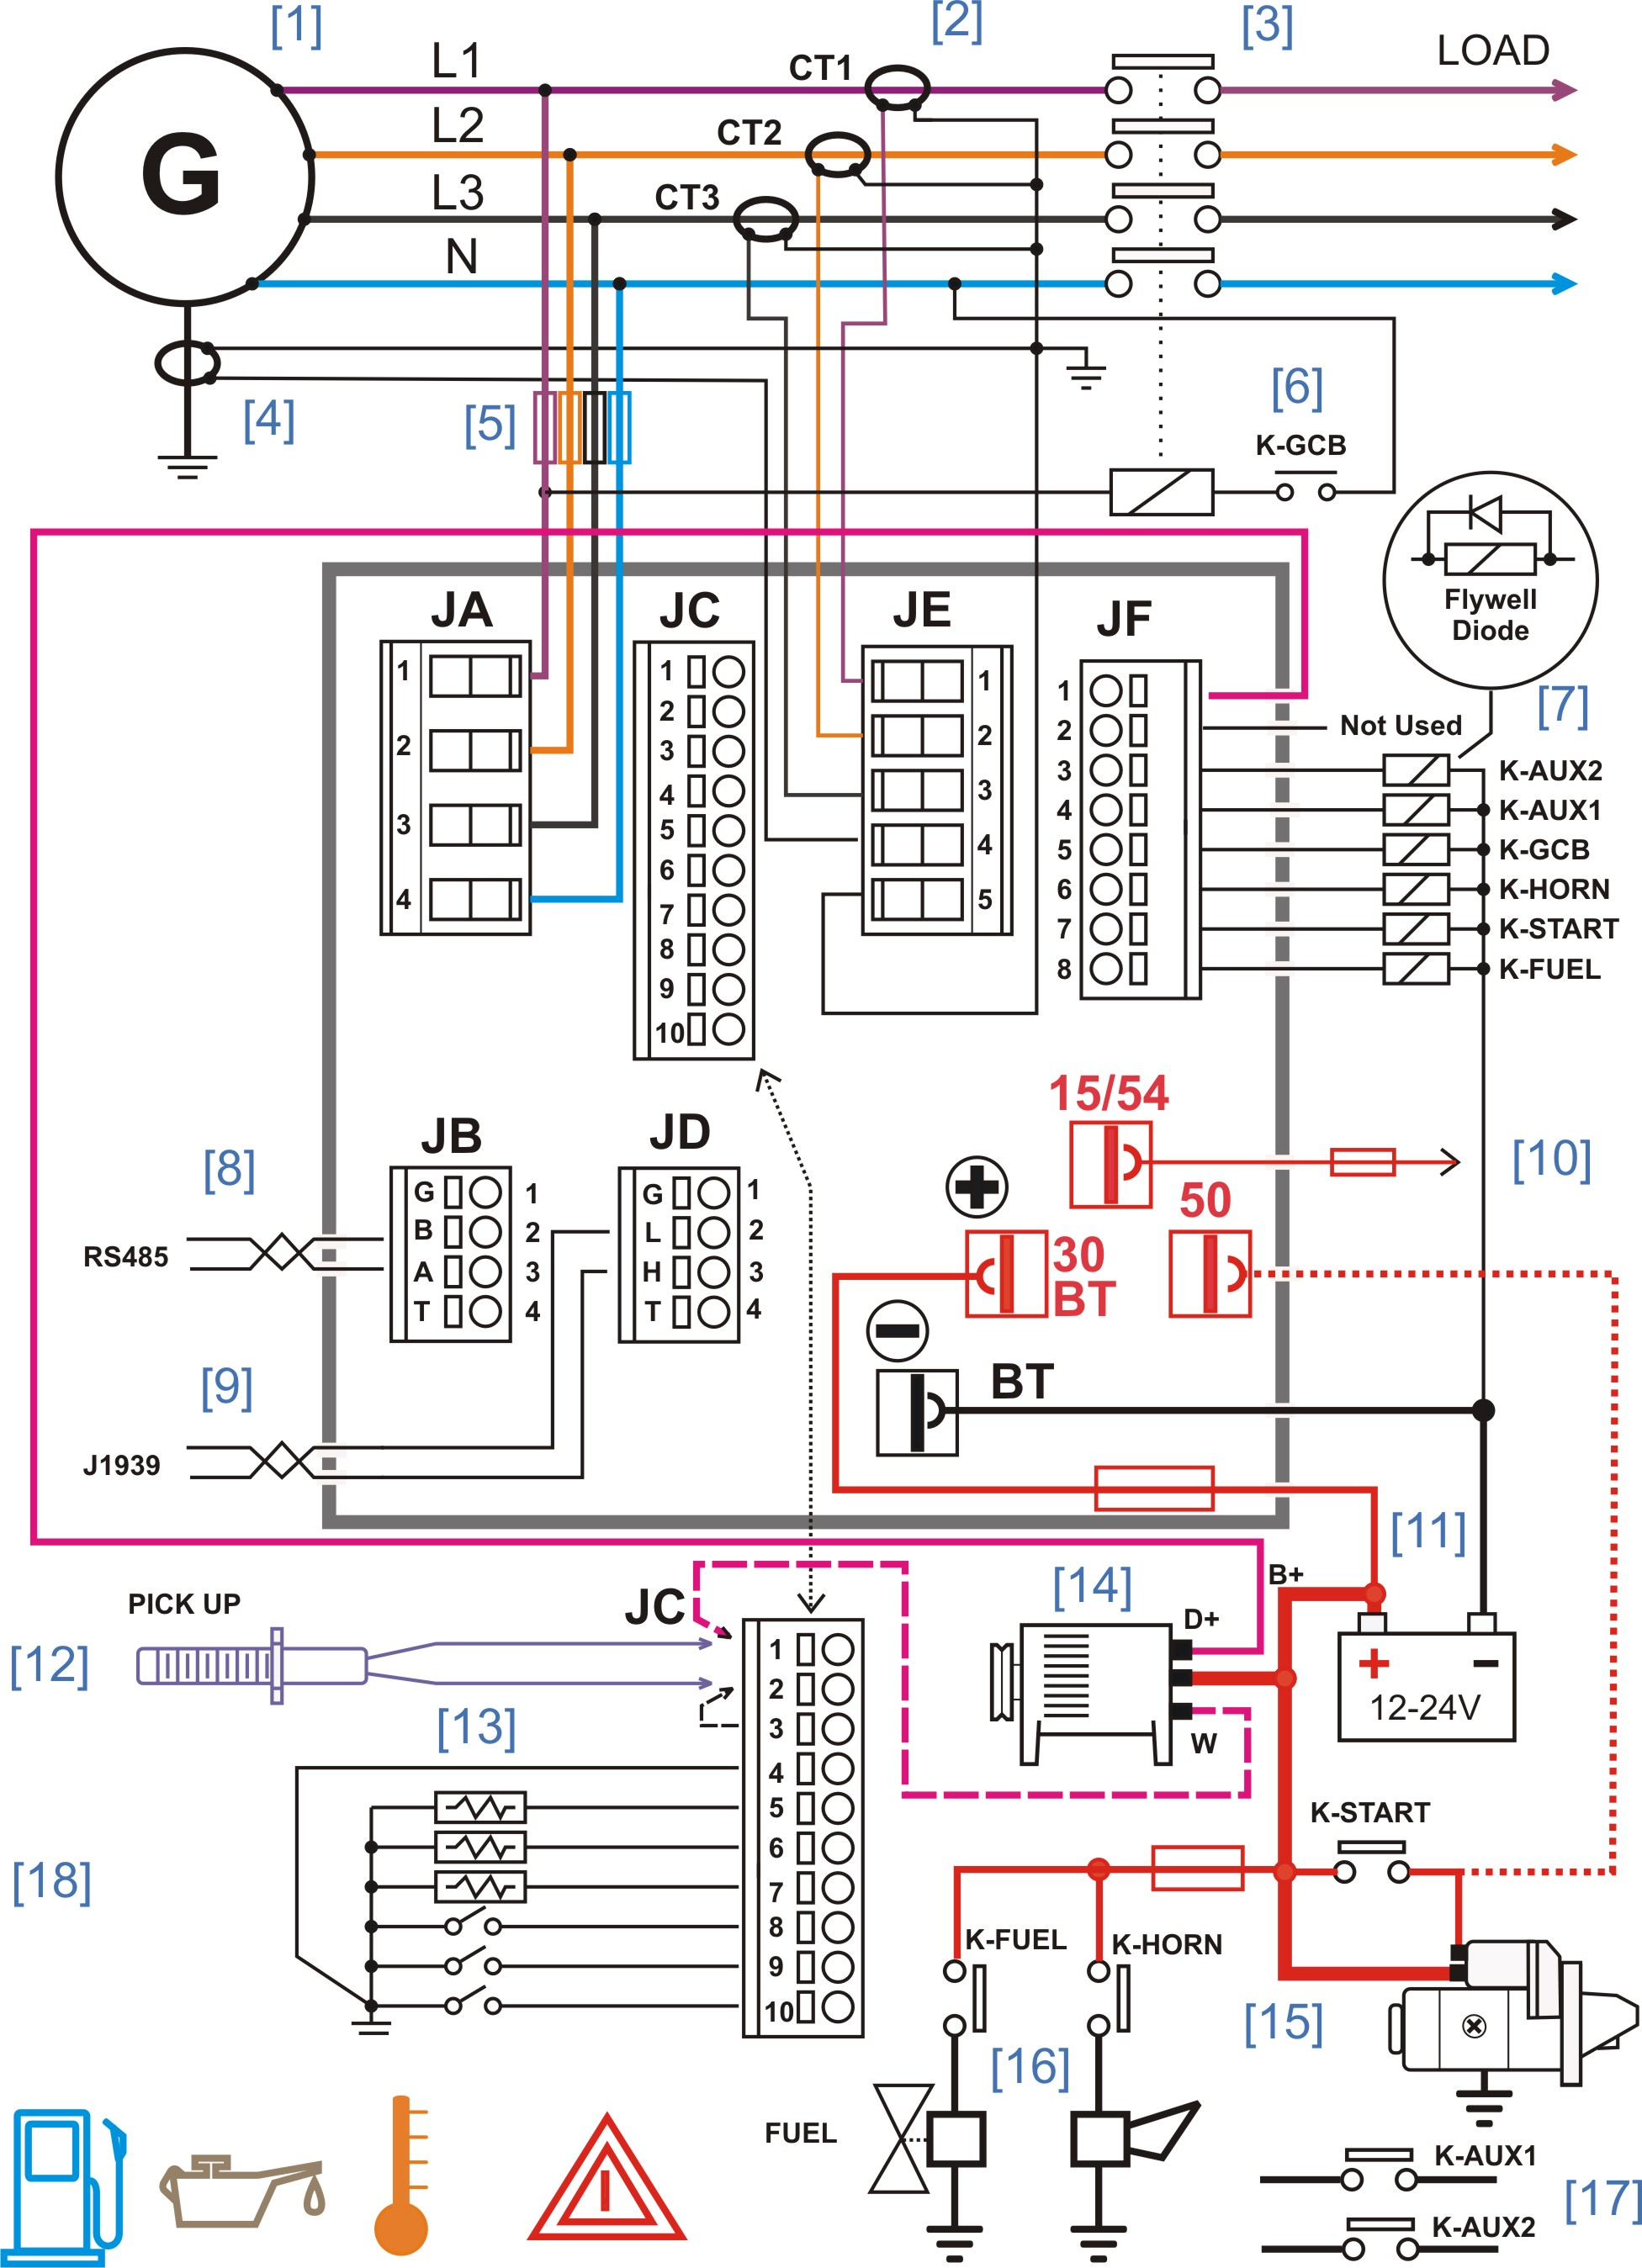 Diesel Generator Control Panel Wiring Diagram generator panel wiring diagram 24 volt alternator wiring diagram 24 volt alternator wiring diagram at edmiracle.co